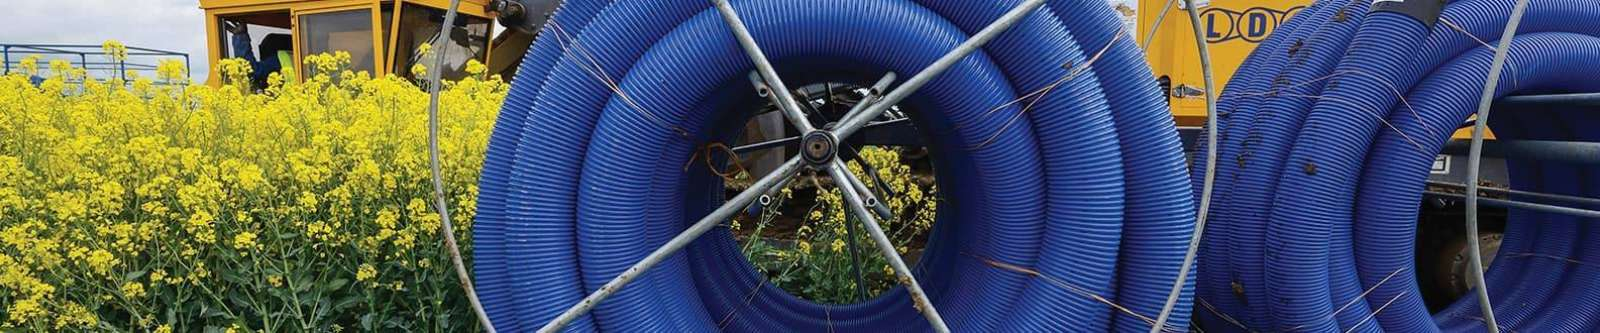 Landcoil | Surface Water Drainage | Polypipe Civils